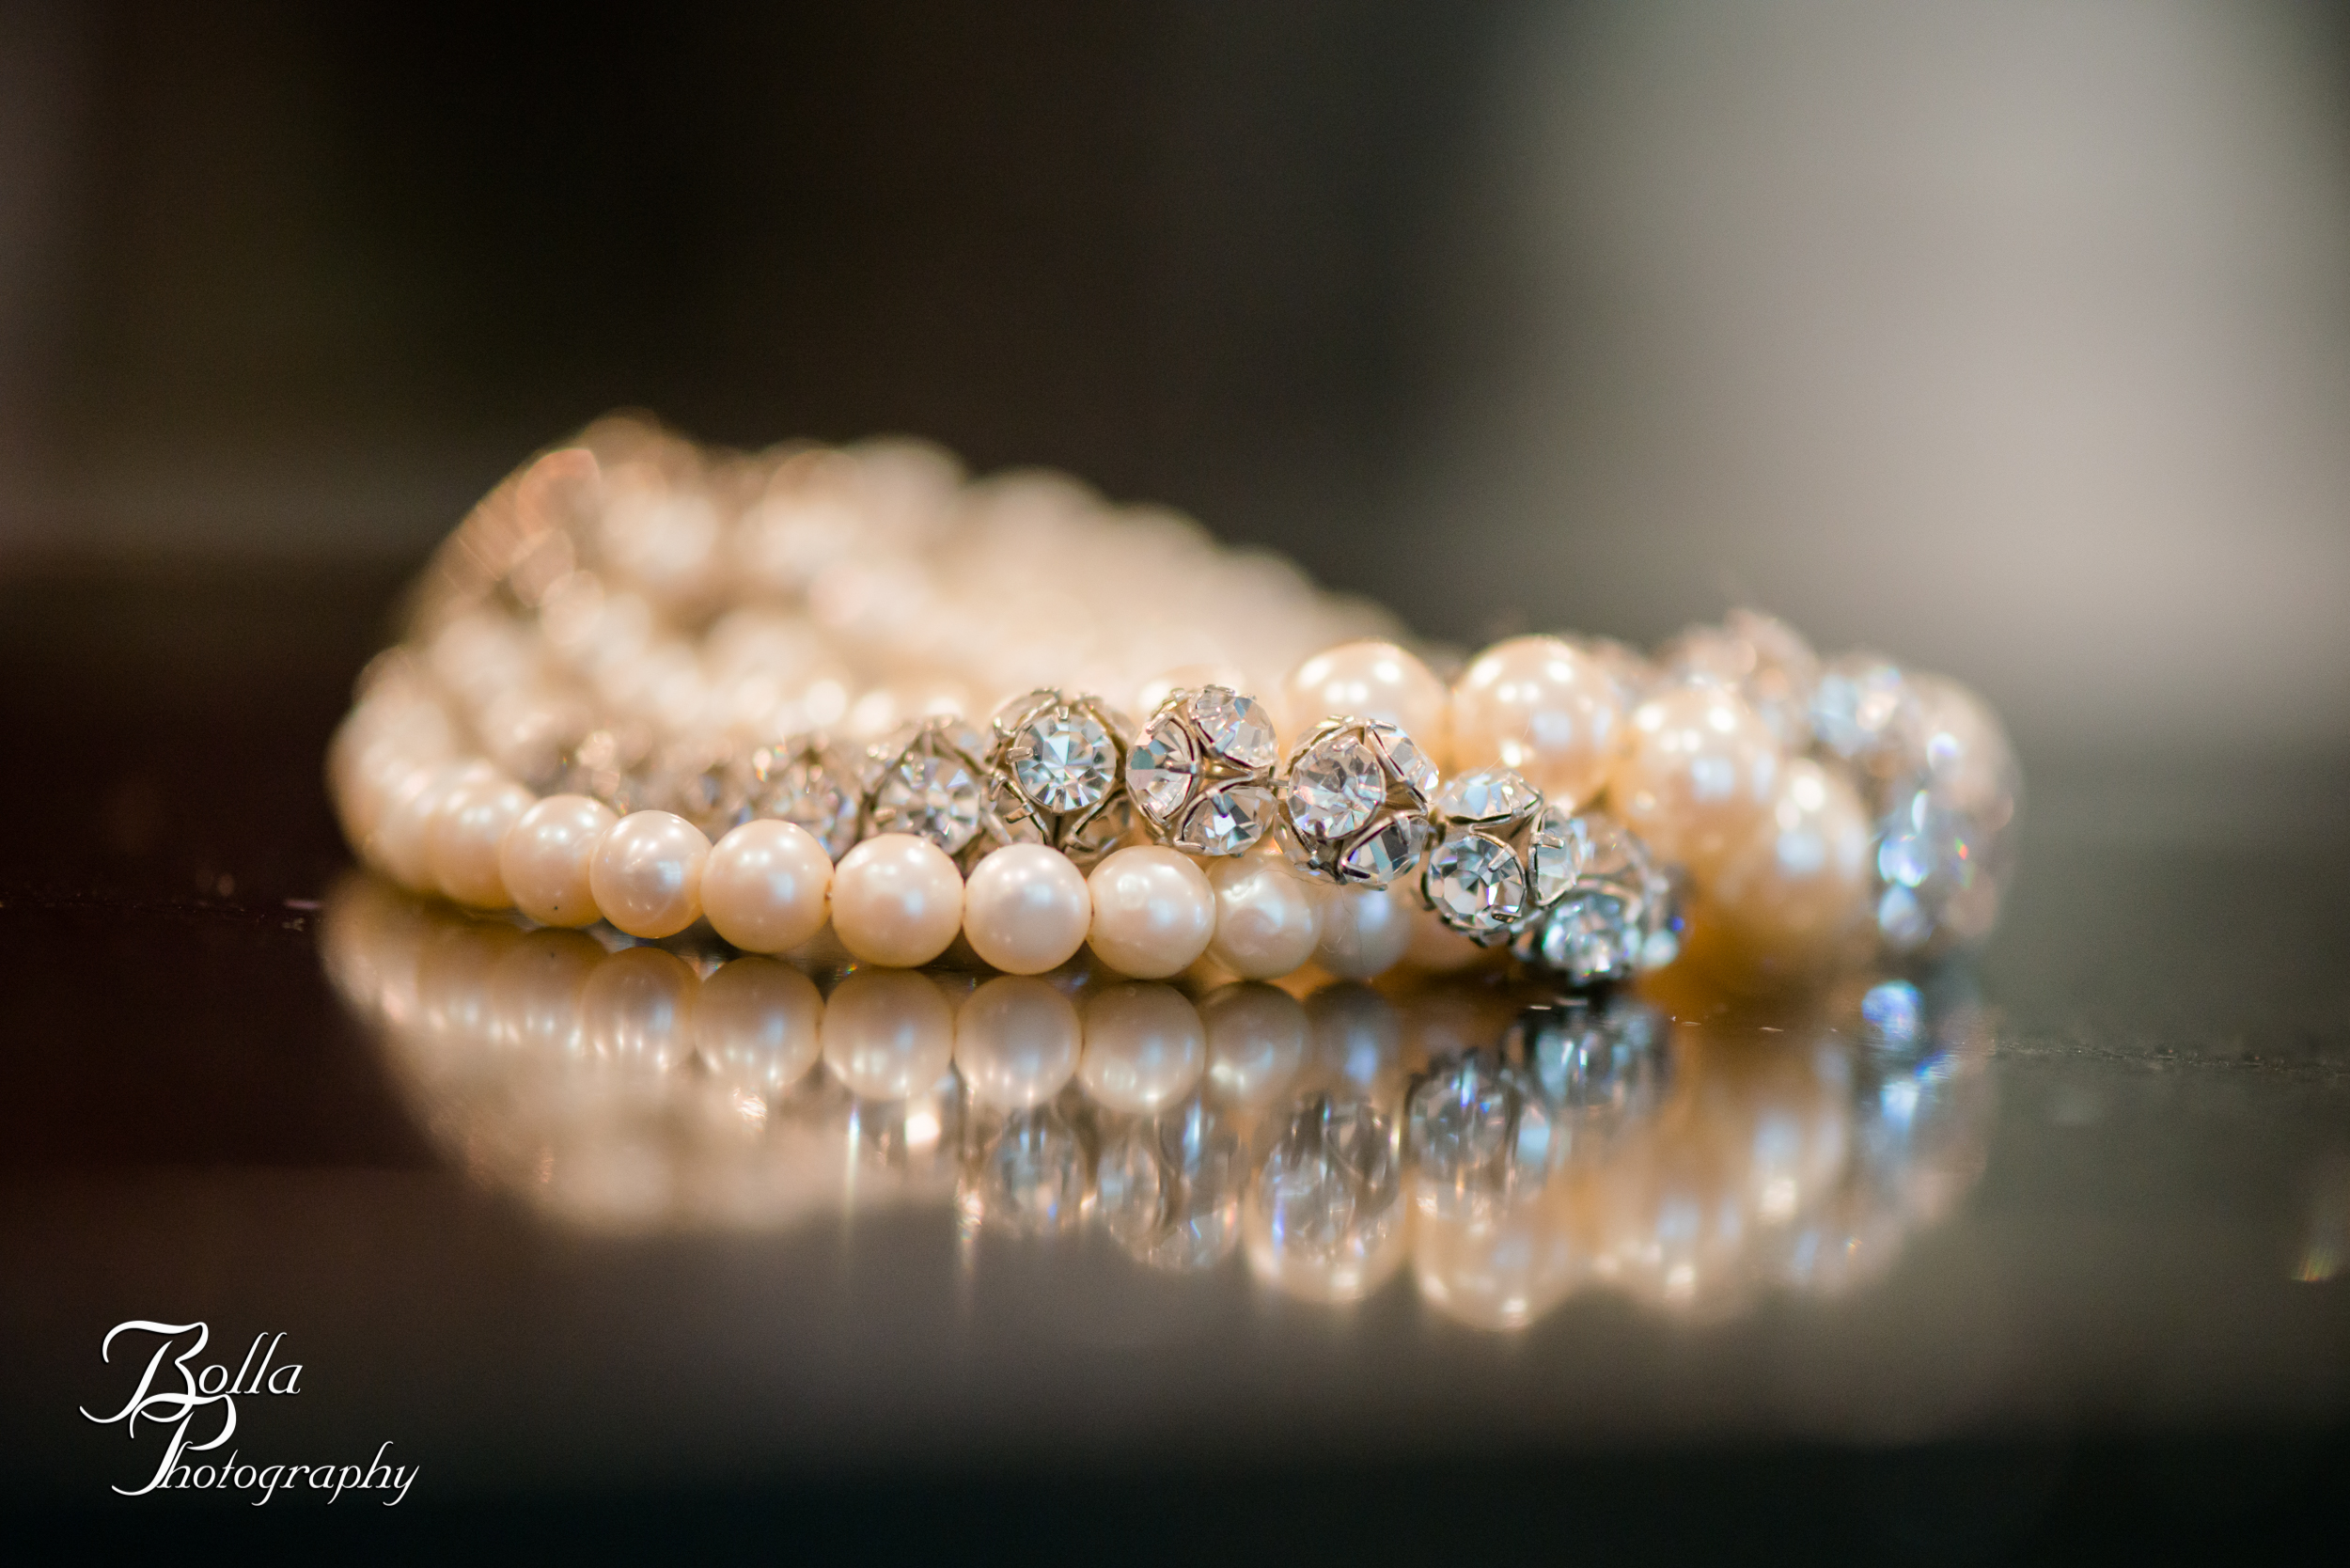 Bolla_photography_edwardsville_wedding_photographer_st_louis_weddings_Heinzmann-0013.jpg